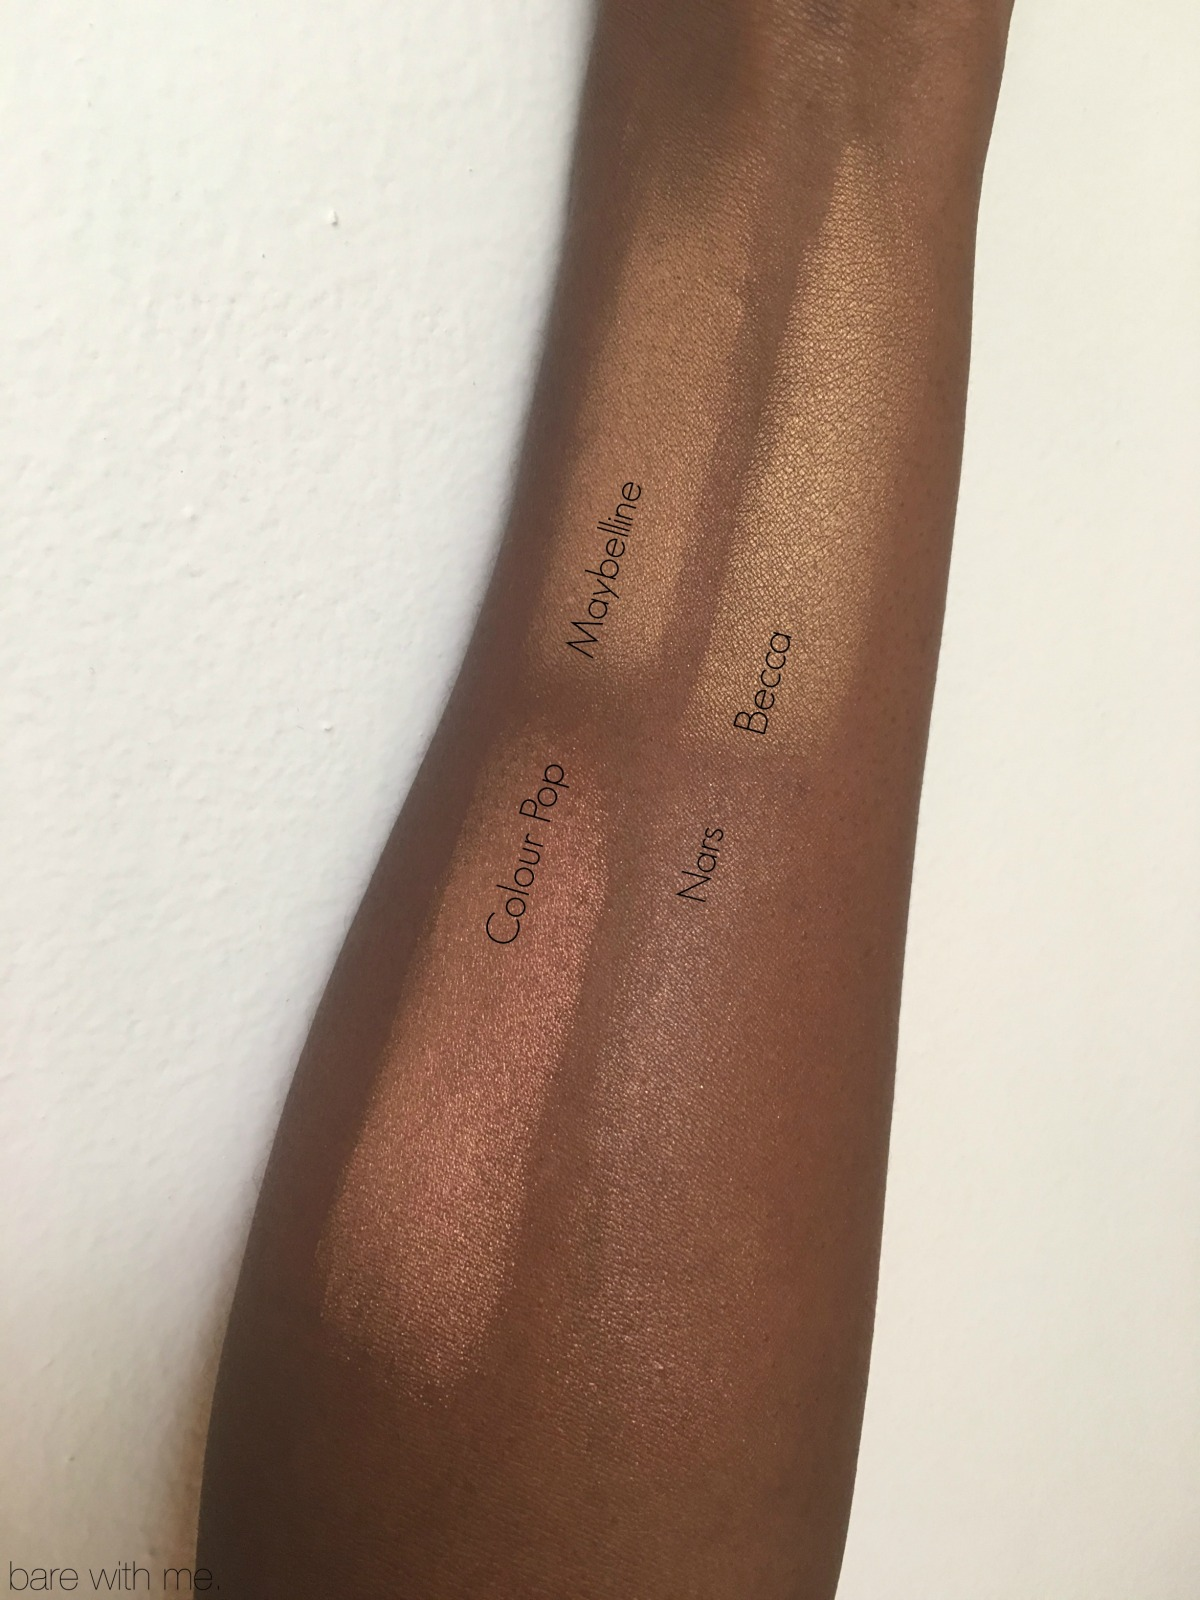 highlighter swatch